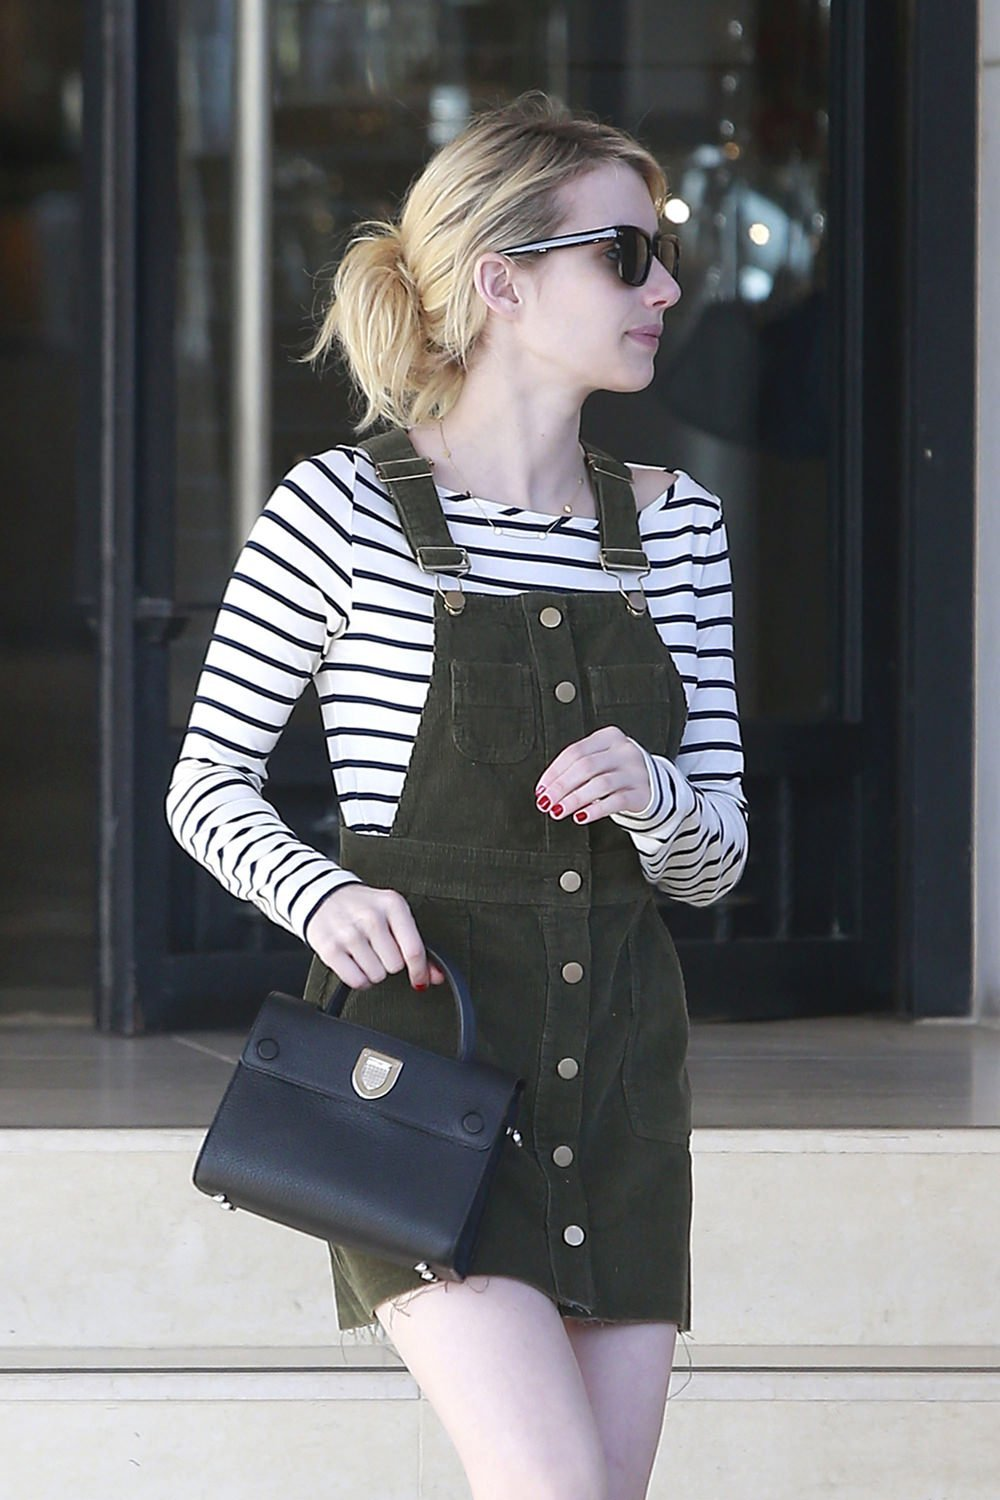 Emma-Roberts-GOTS-Street-Style-Fashion-ASOS-Amour-Vert-Ann-Taylor-Tom-Lorenzo-Site-1